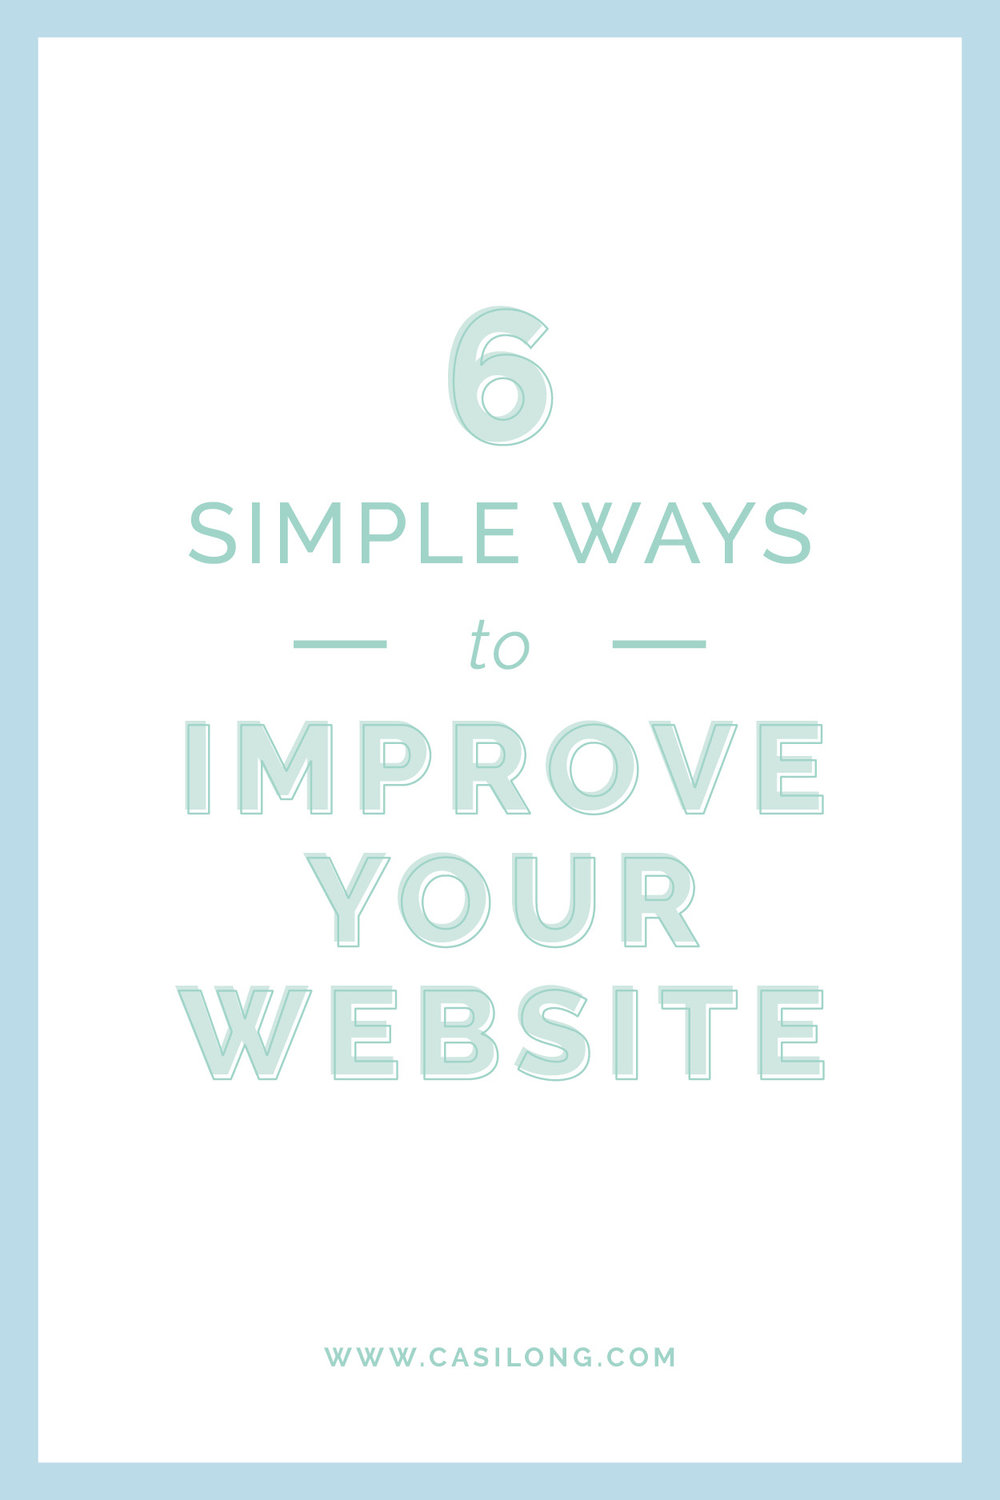 Six simple ways to improve your website | casilong.com/blog | #casilongdesign #fearlesspursuit